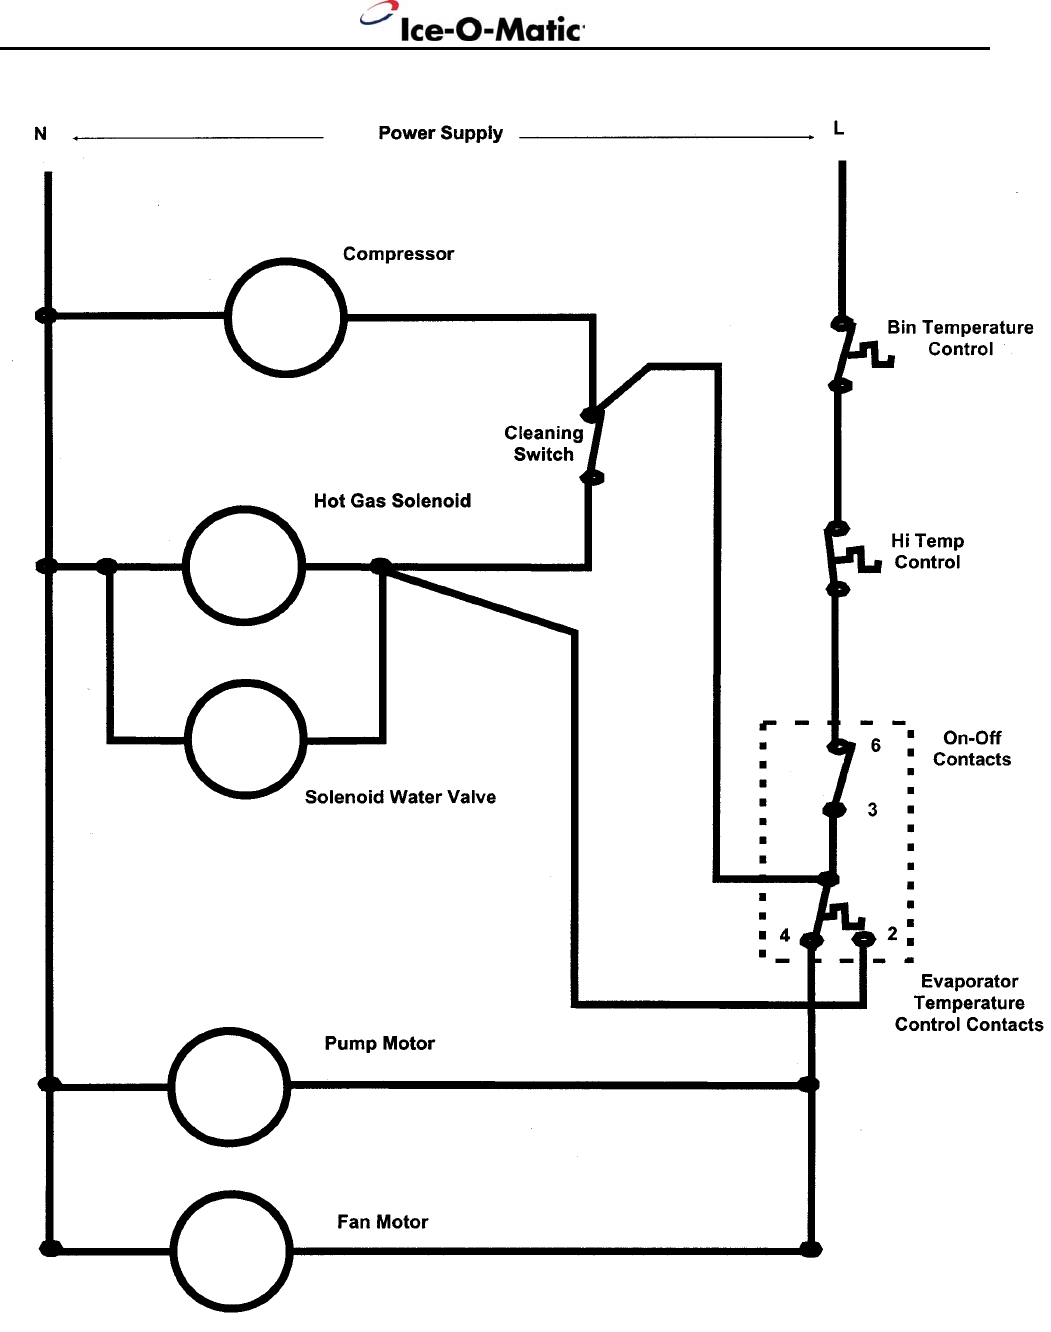 ba4e6ab1 5c13 4850 81c4 18475c464d2c bg13 page 19 of ice o matic ice maker iceu060 user guide ice maker wiring schematic at crackthecode.co